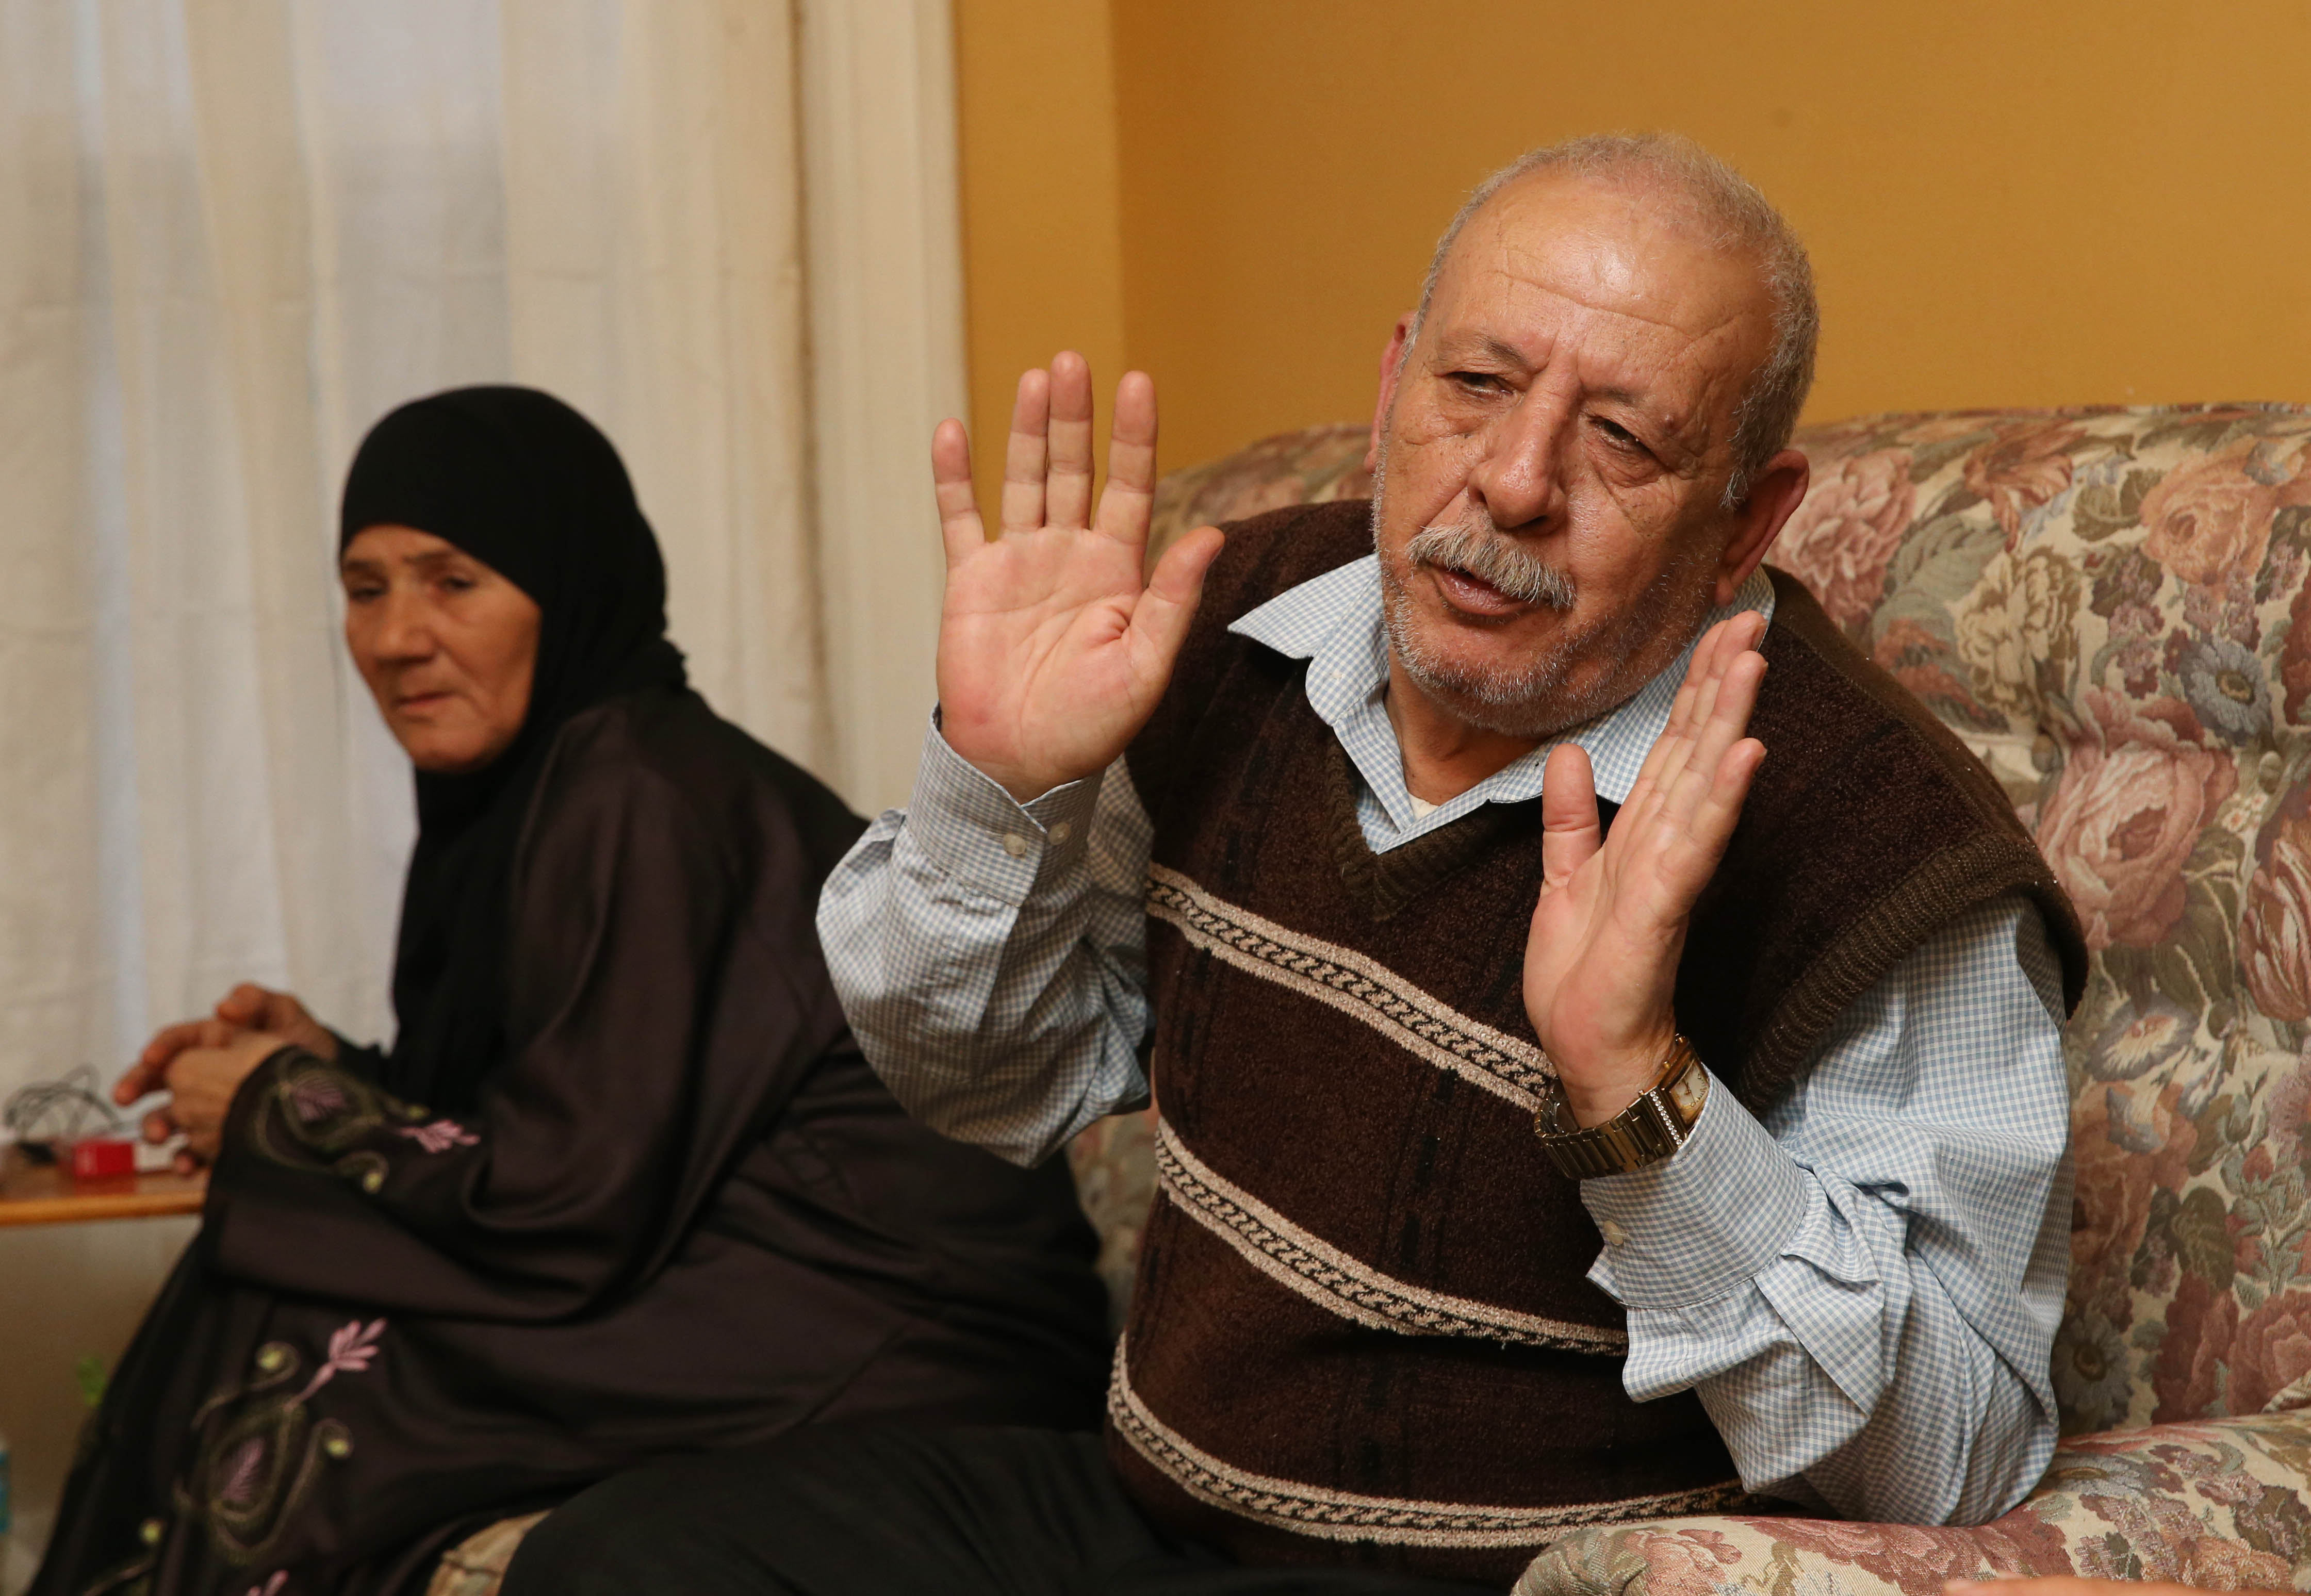 The Ay Toghlo family, refugees from Syria, are now residents on Buffalo's West Side. From left are Eidah Al Suleiman, 54, and her husband Mohammed Ay Toghlo, 67.  They talk about how they came to the United States and how happy they are to be here.  (Sharon Cantillon/Buffalo News)